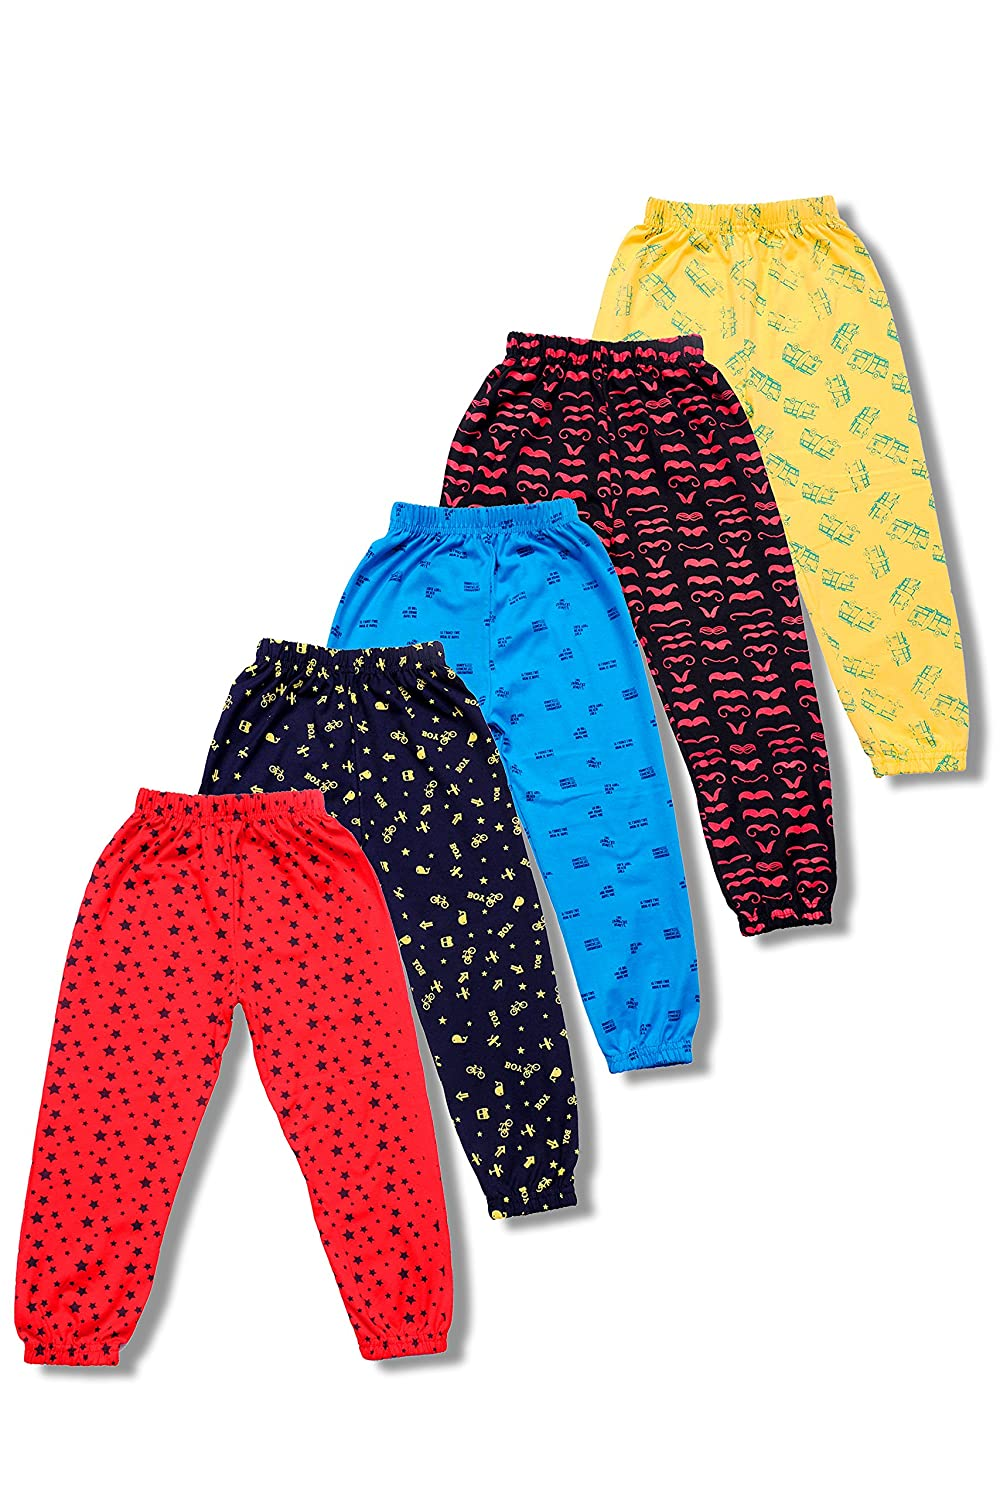 T2F Boys' Printed Track Pant (Pack of 5, Multicolour)